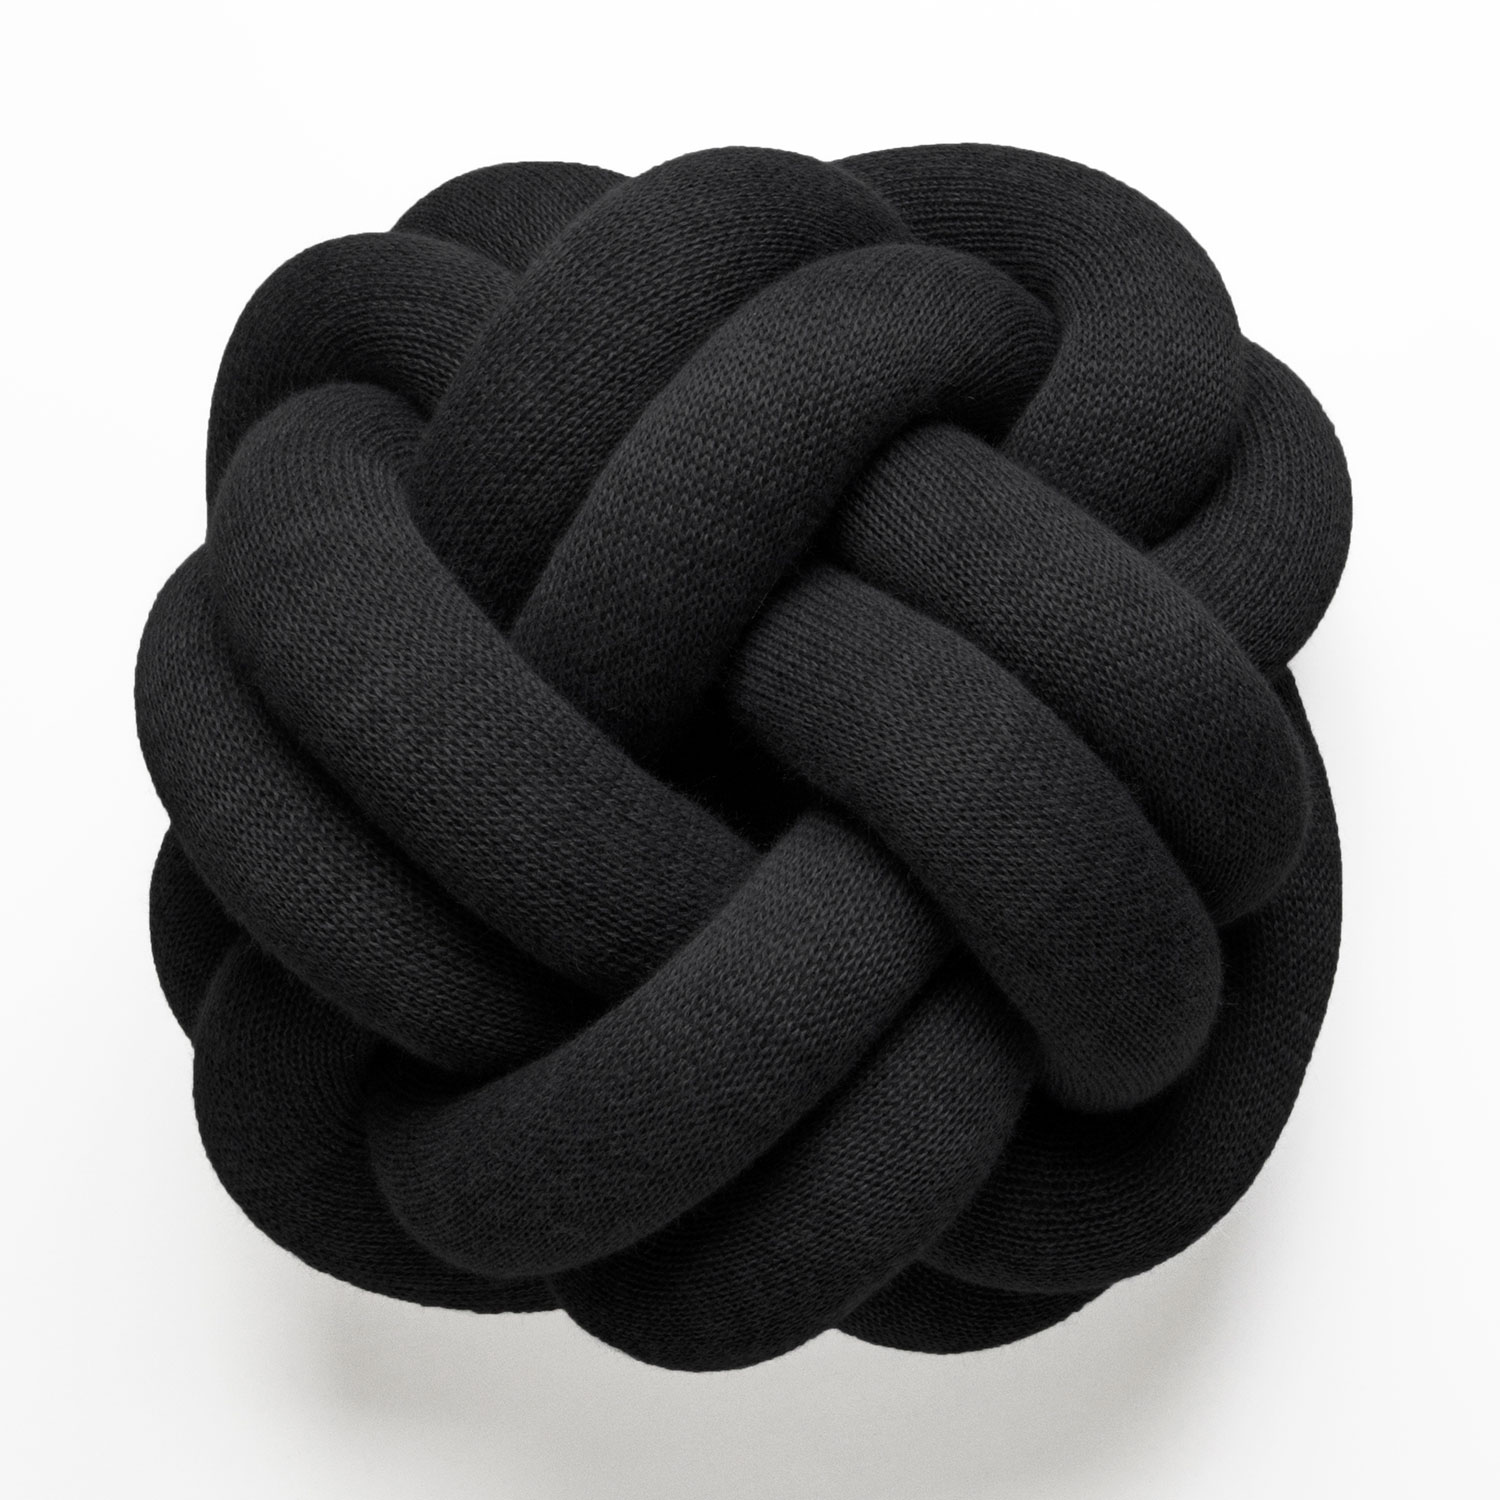 Knot kudde, anthracite